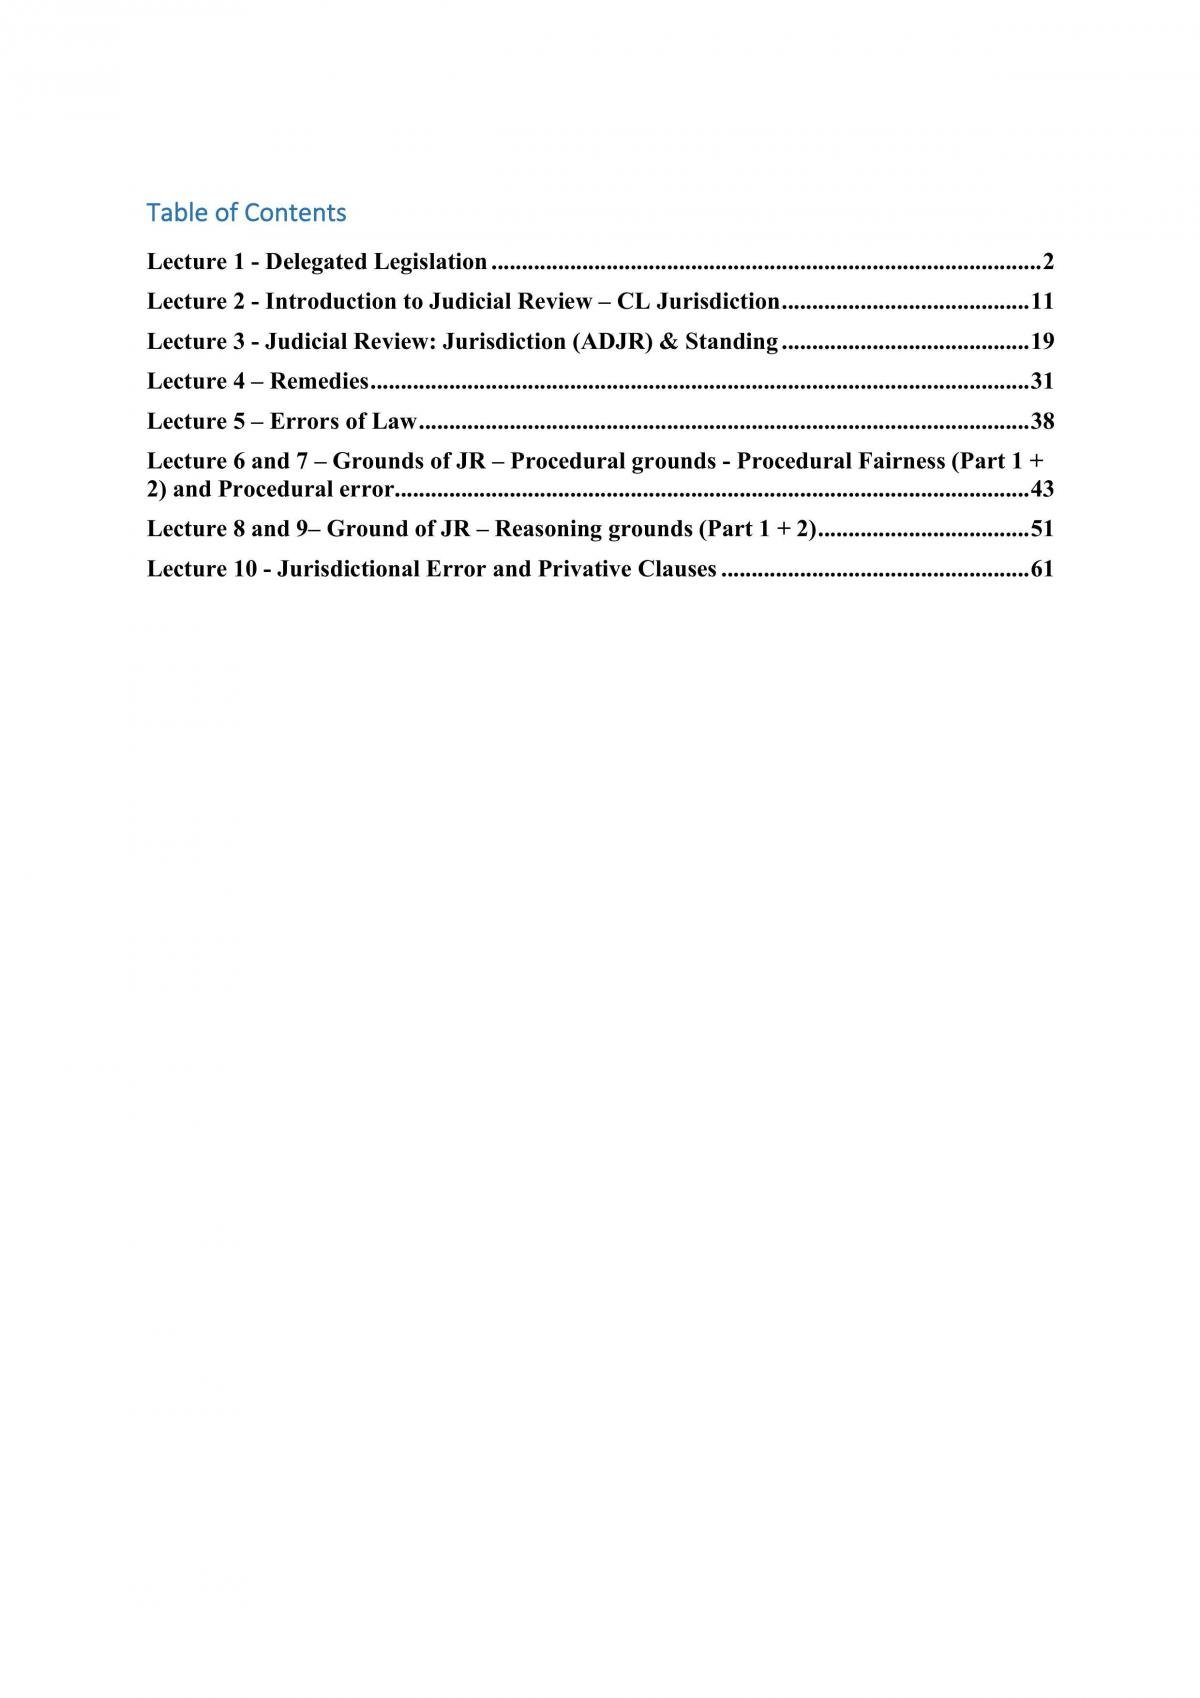 Administrative Law UTS Notes - Page 1